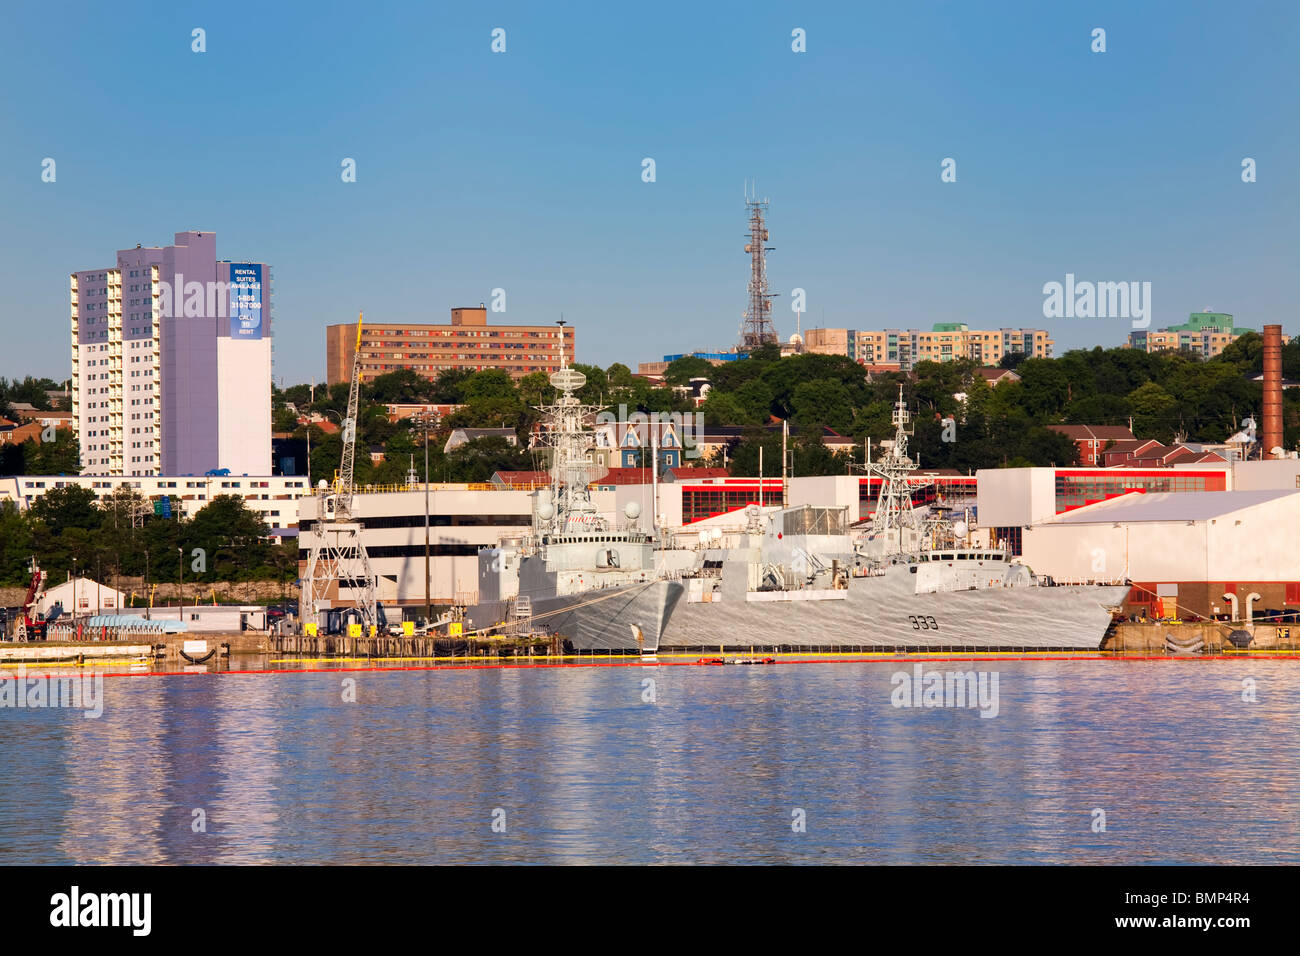 The HMCS Toronto at the HMC Dockyard which is part of Canadian Forces Base Halifax.  Located along Halifax Harbour, - Stock Image